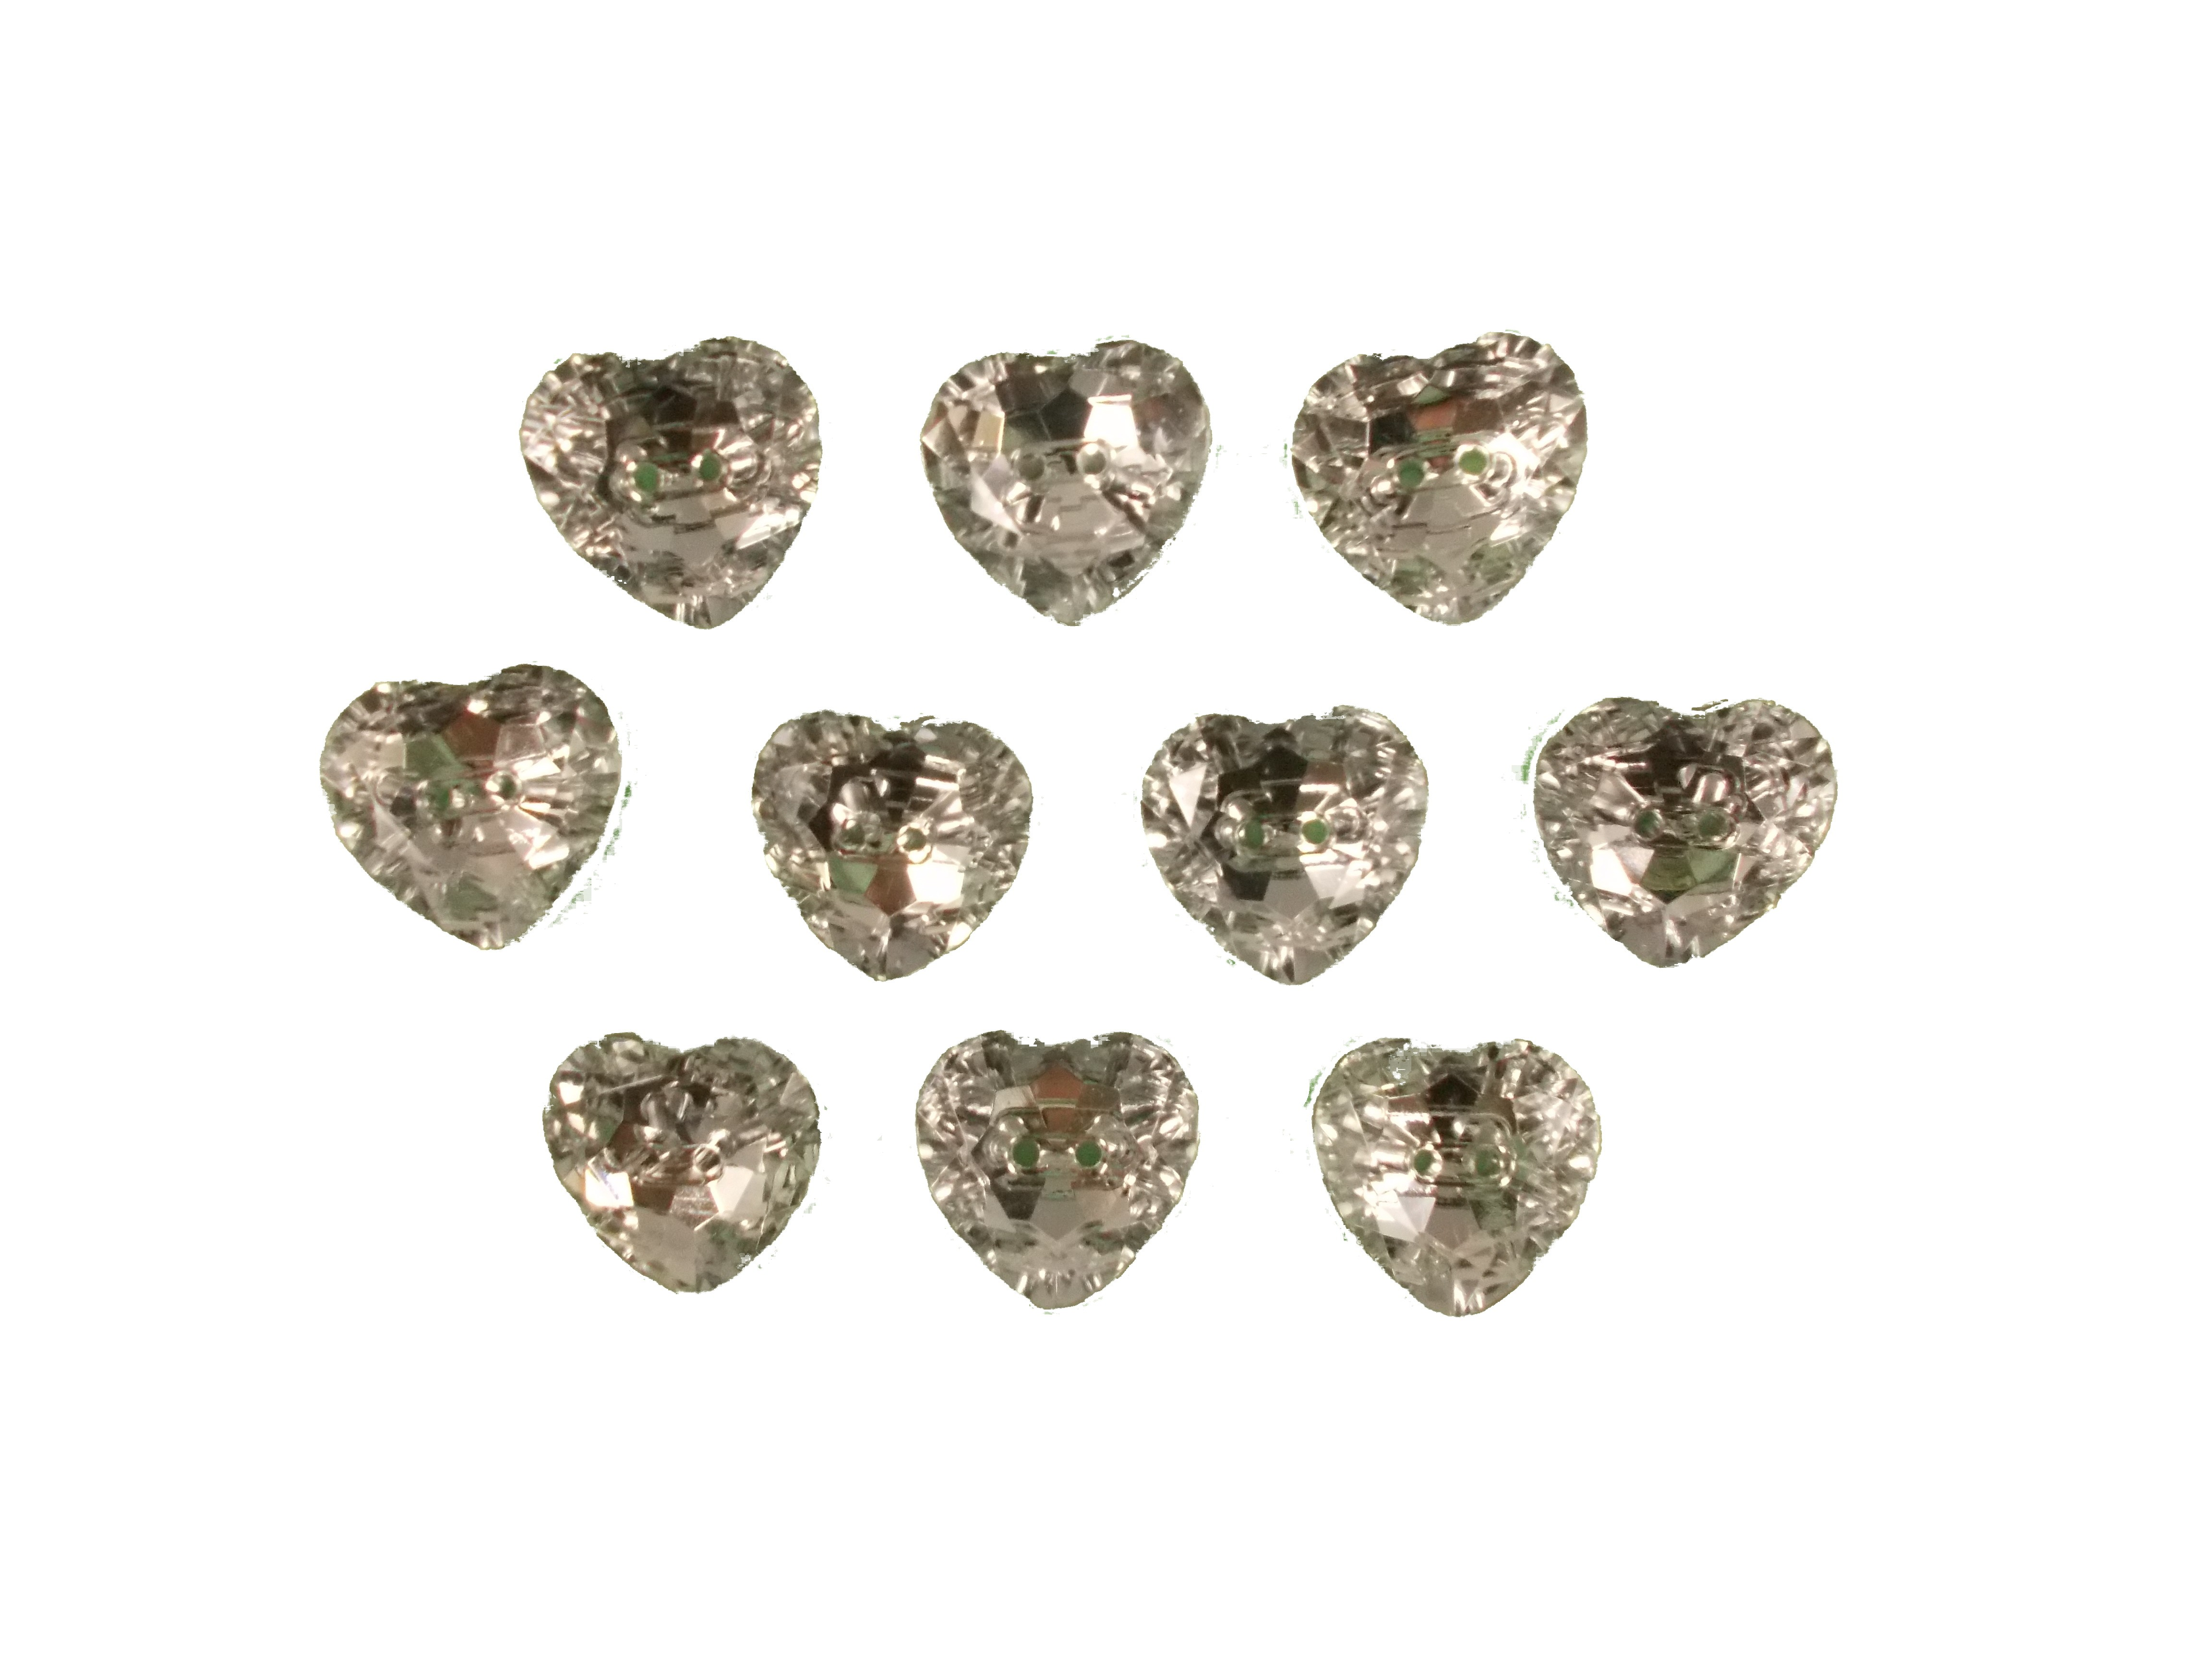 Acrylic Crystal Effect Heart Shape Buttons 28mm Clear Pack of 10